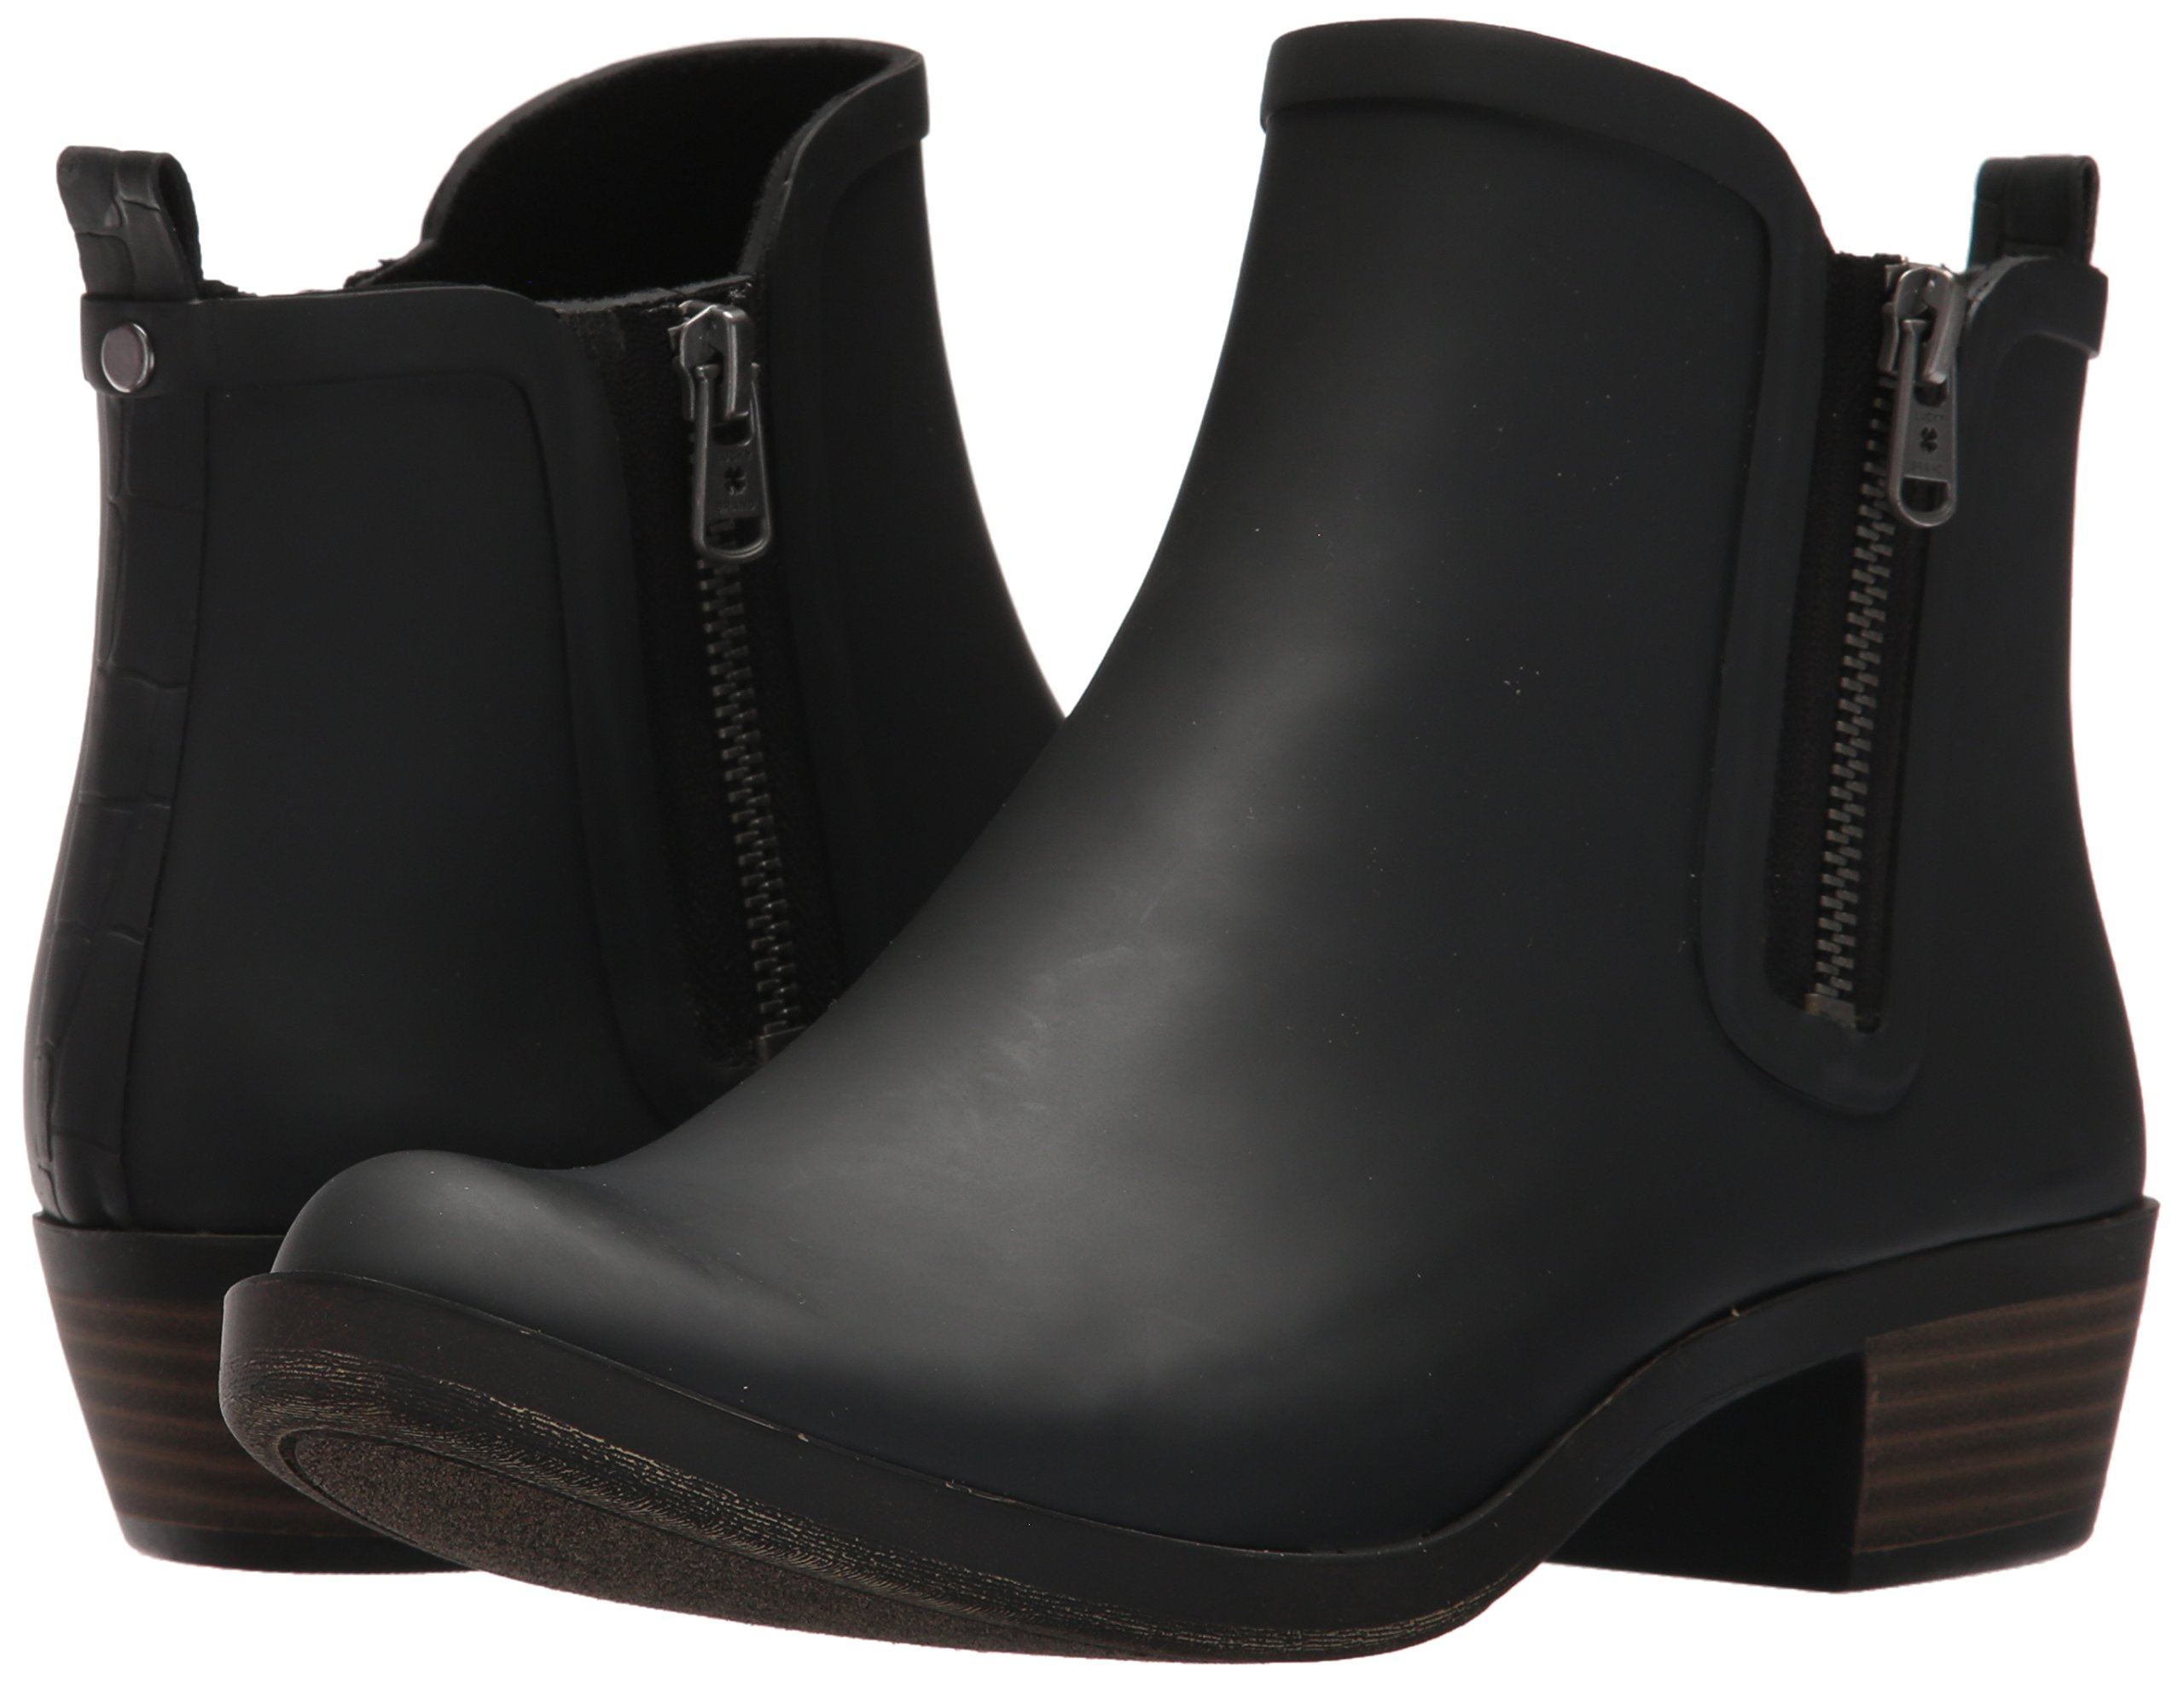 Lucky Brand Women's Baselrain Rain Boot, Black Crocodile, 10 Medium US by Lucky Brand (Image #6)